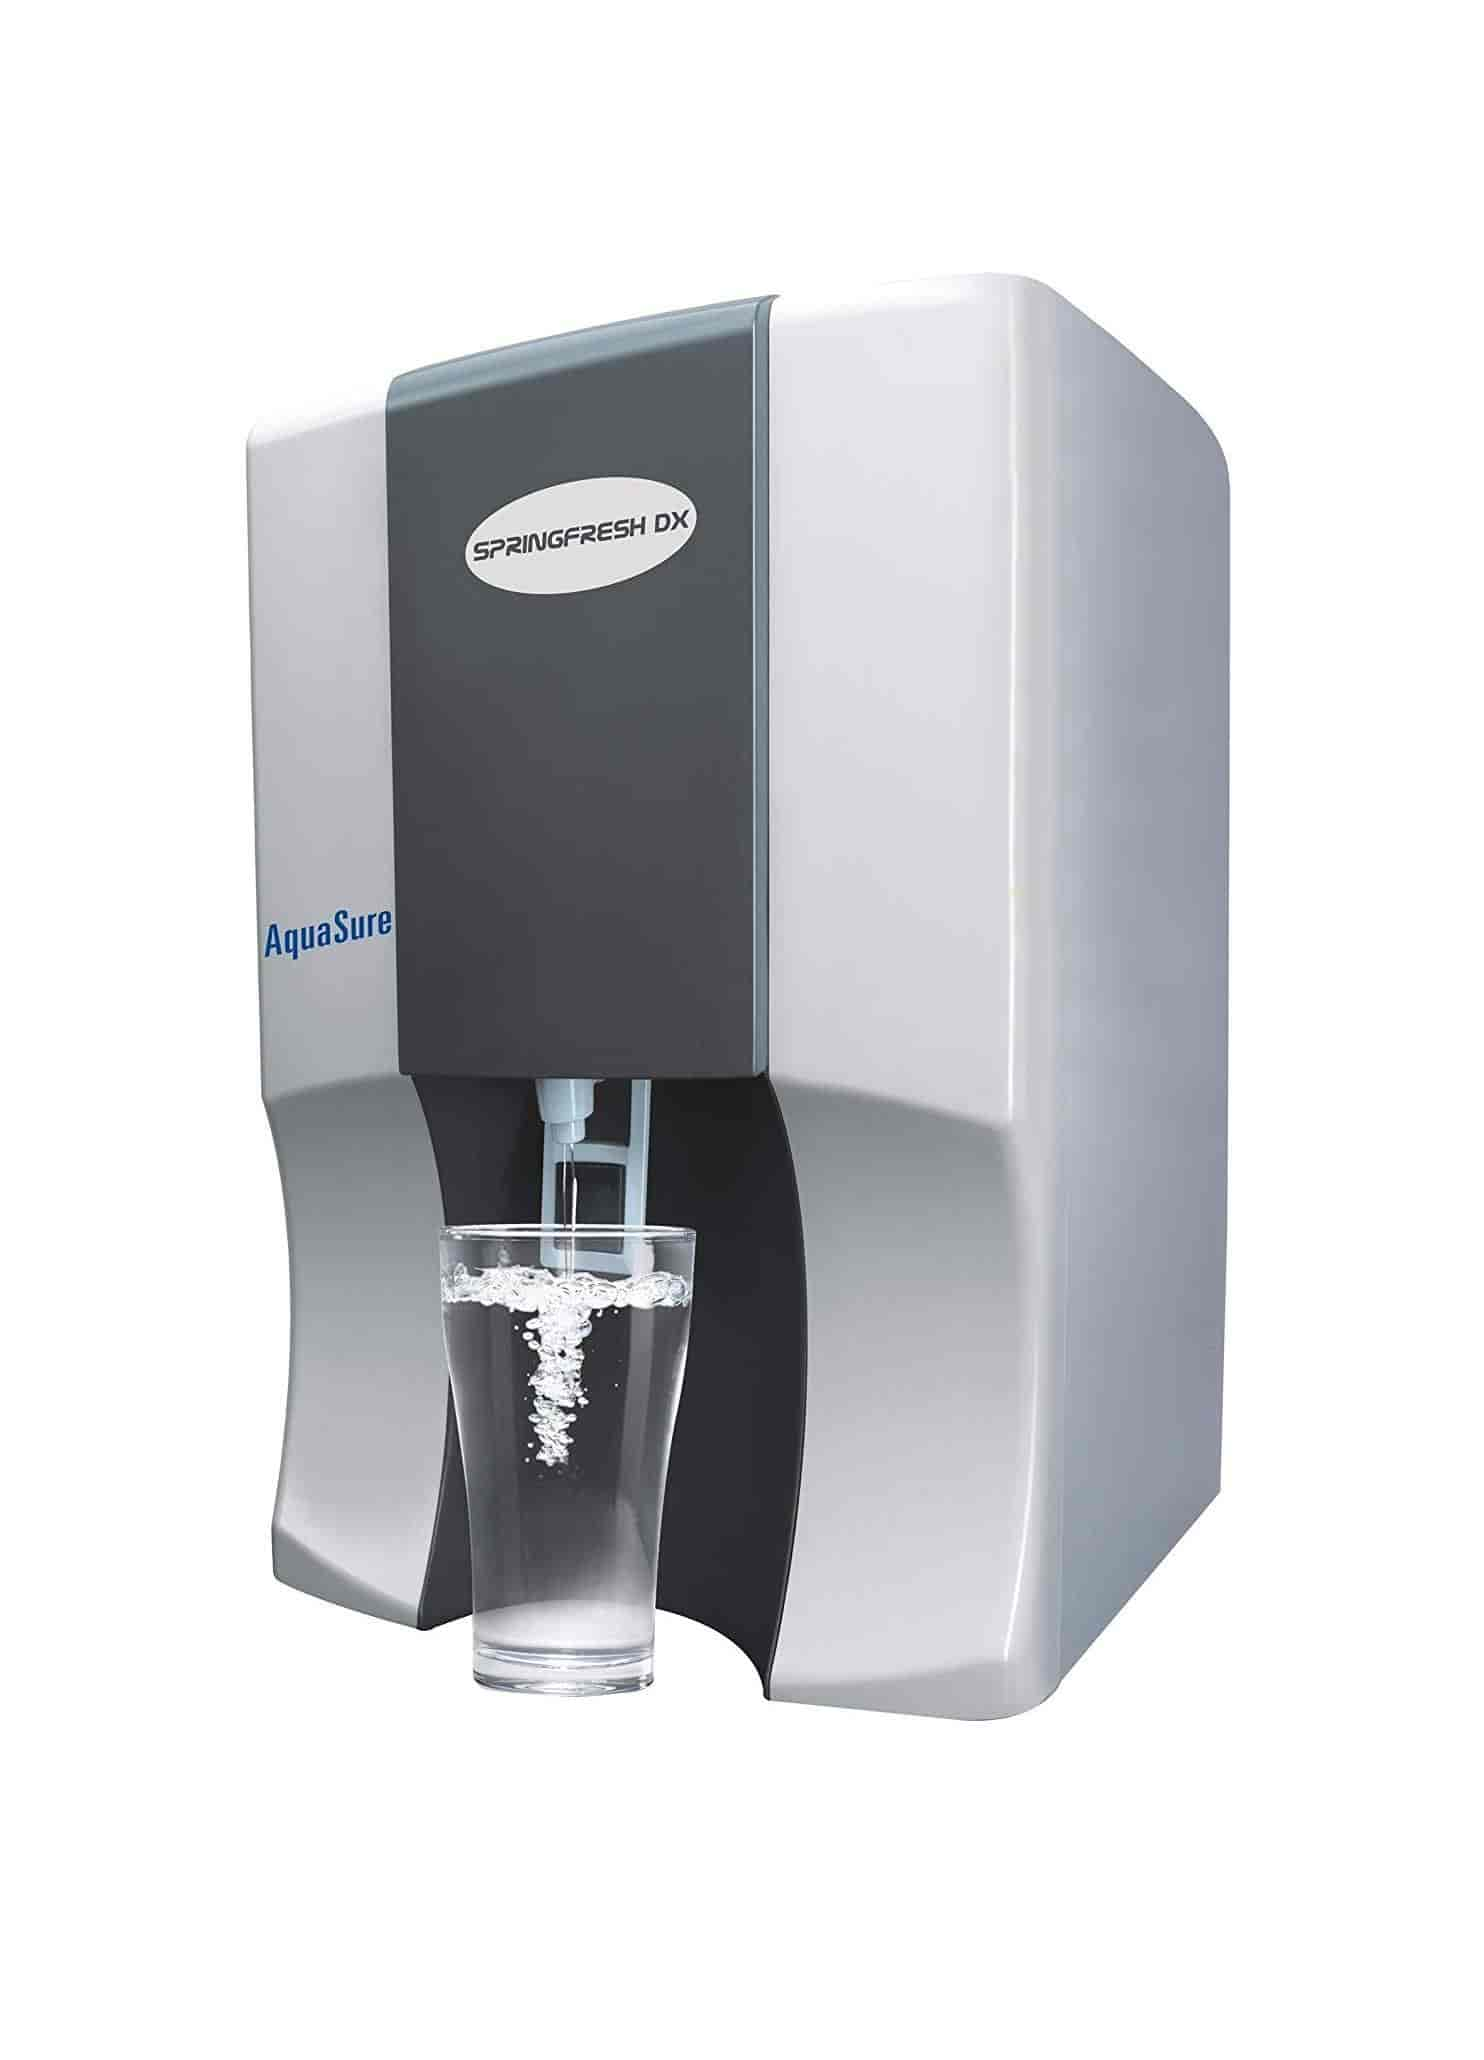 D Mart Nerul Mobile Phone Dealers In Mumbai Justdial Millet Flagship Intelligent Household Water Purifiers